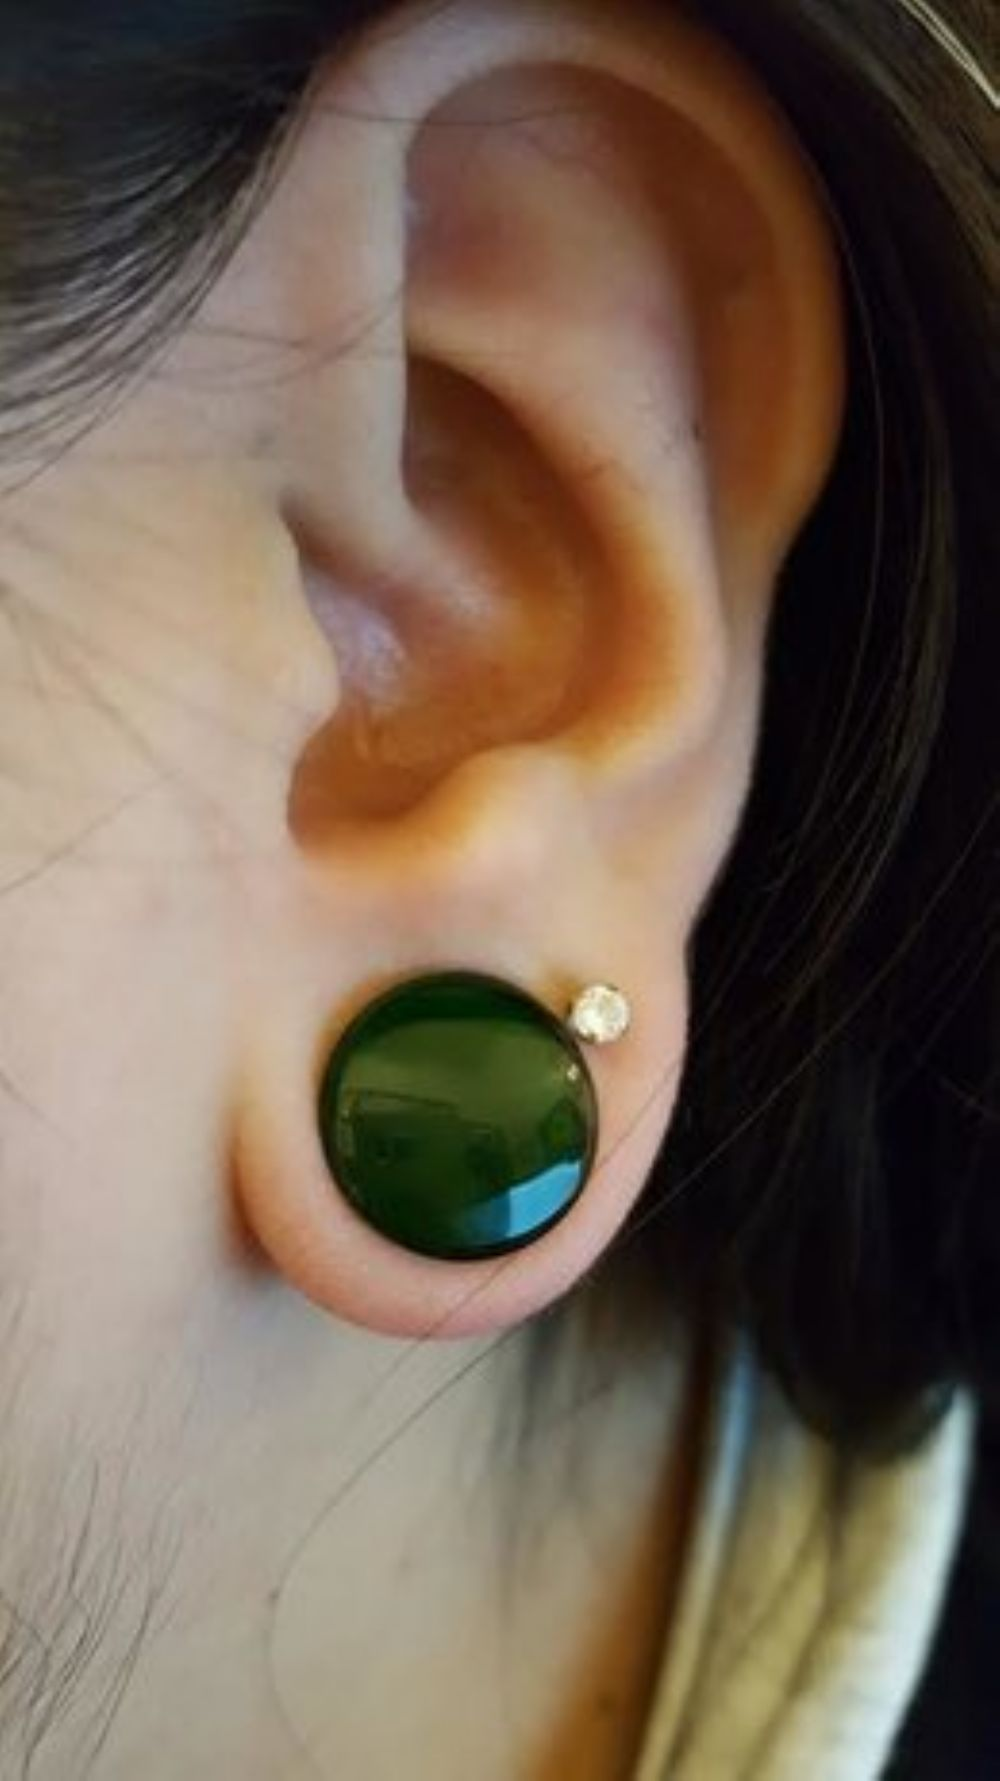 """1/2""""  Emerald (pair) Glass double flare solid color plugs  -- Photo # 78352"""